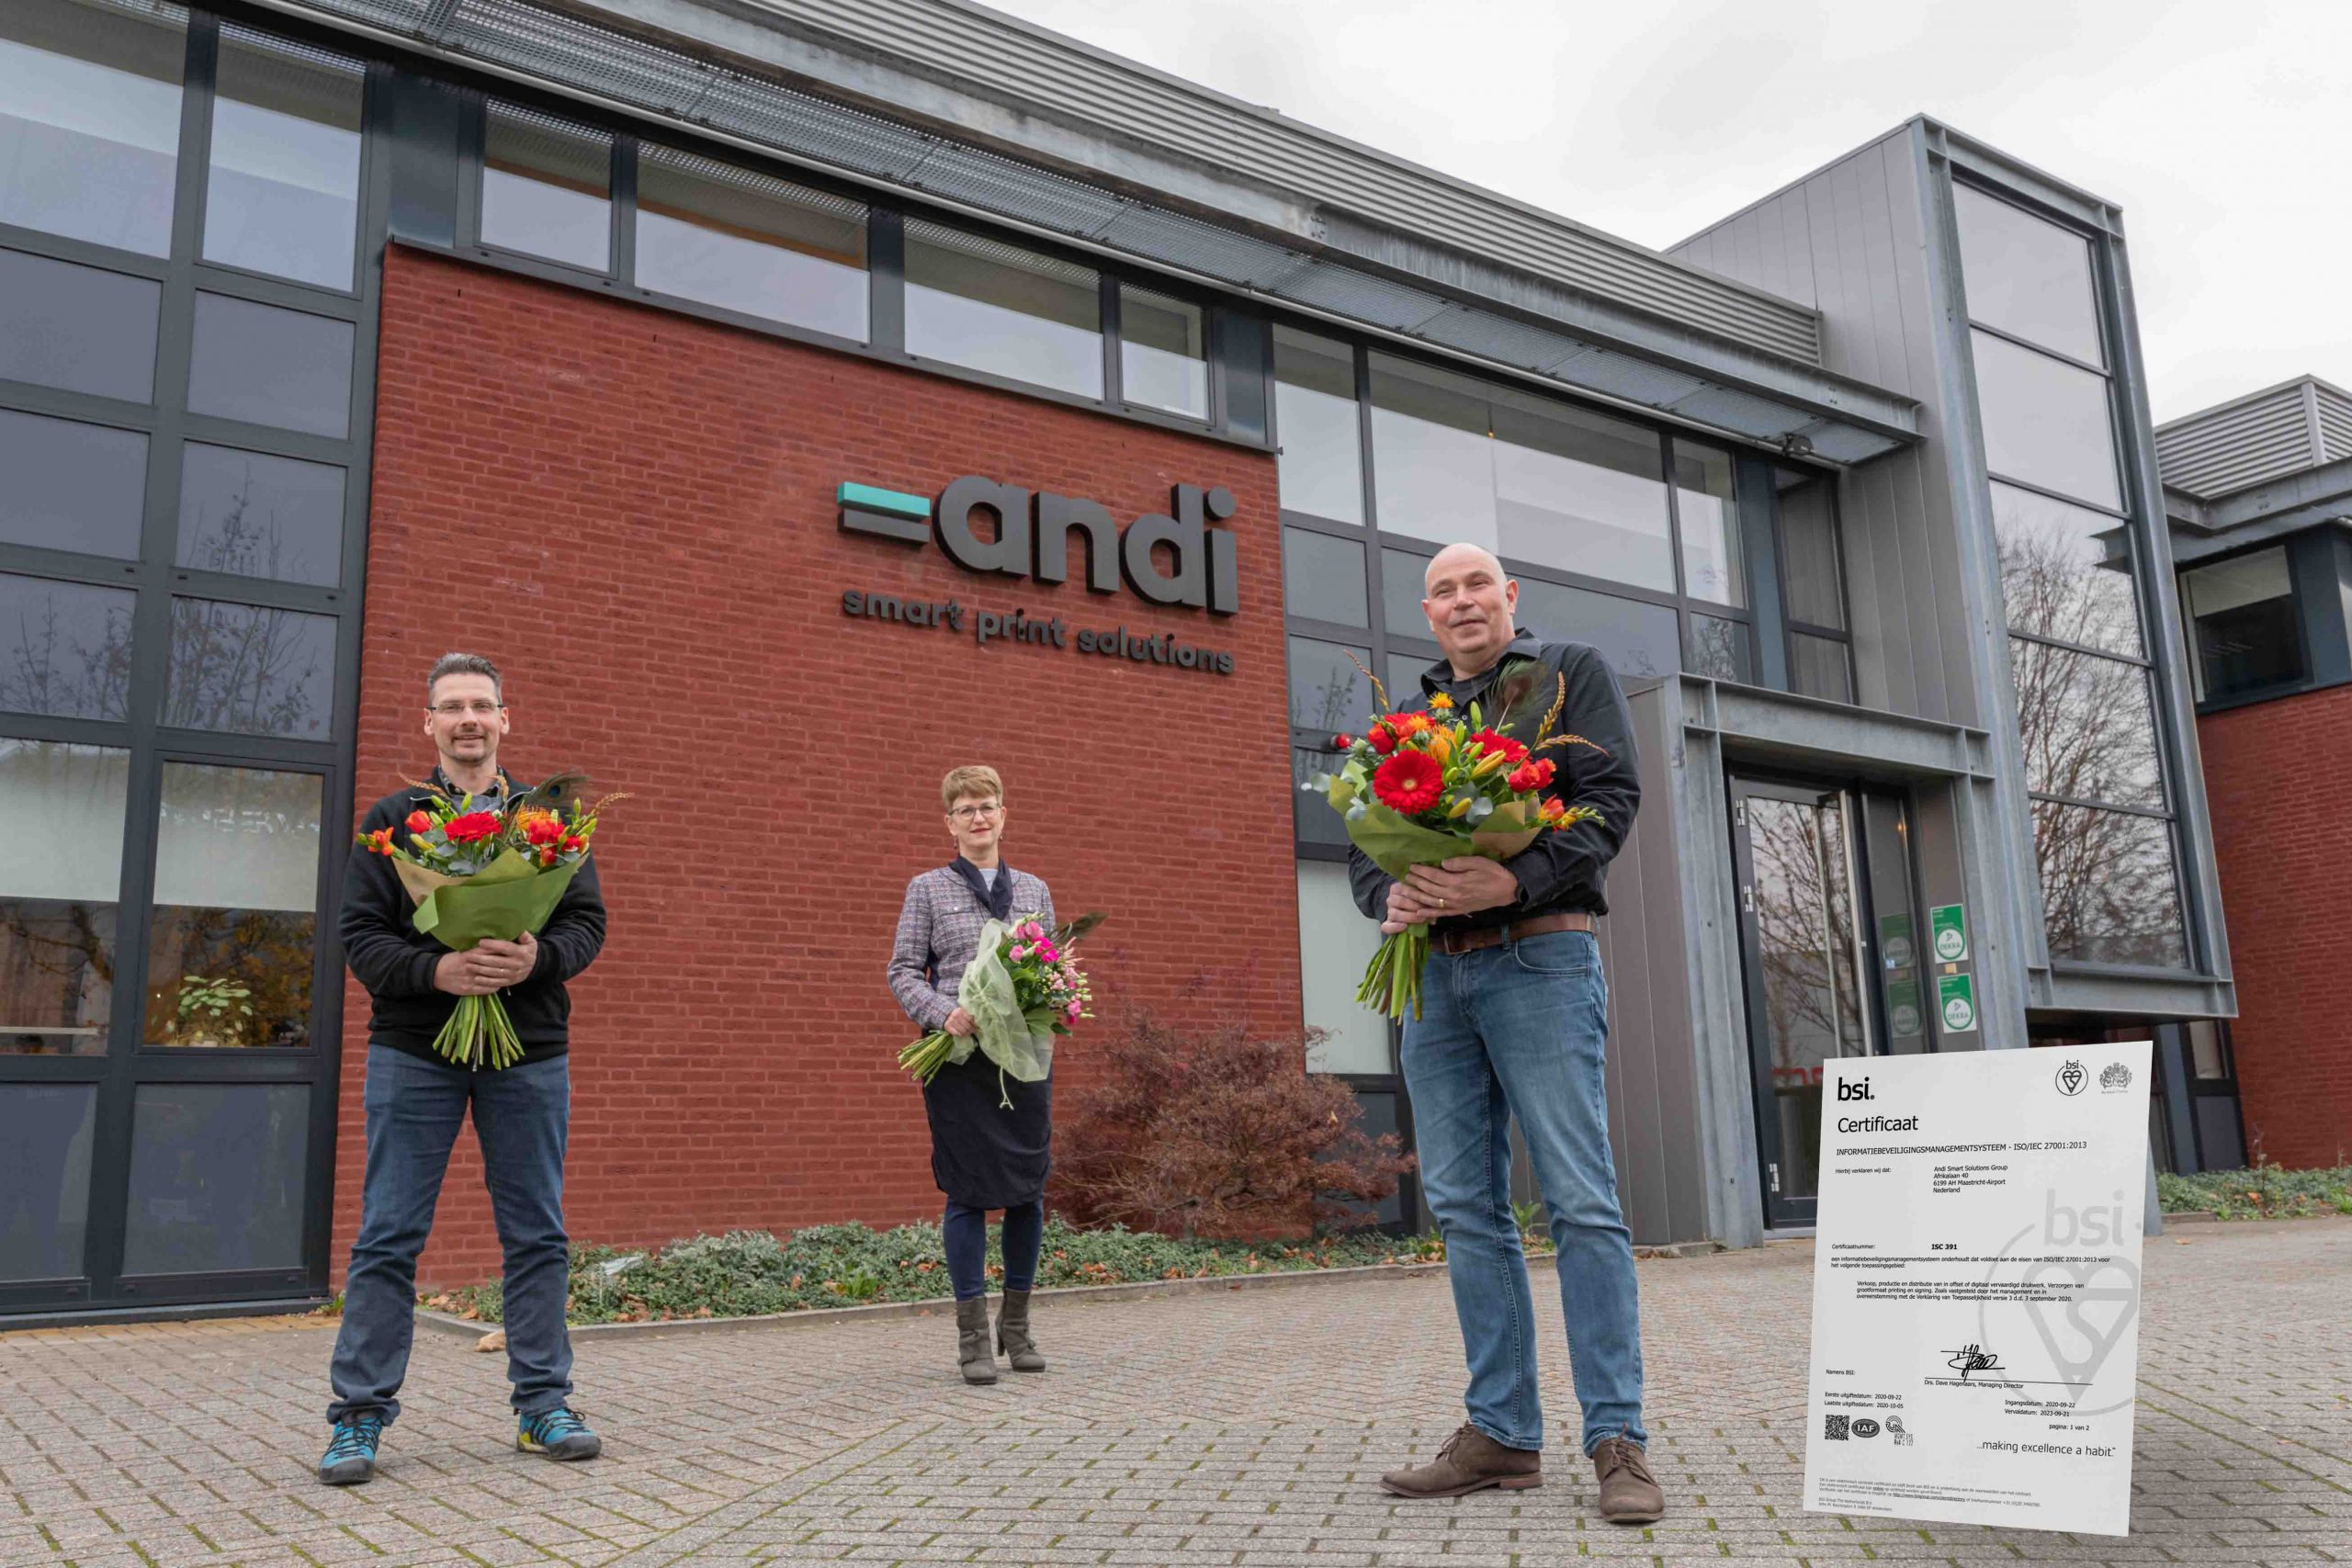 andi smart solutions group behaalt iso/iec 27001 certificaat voor informatiebeveiliging